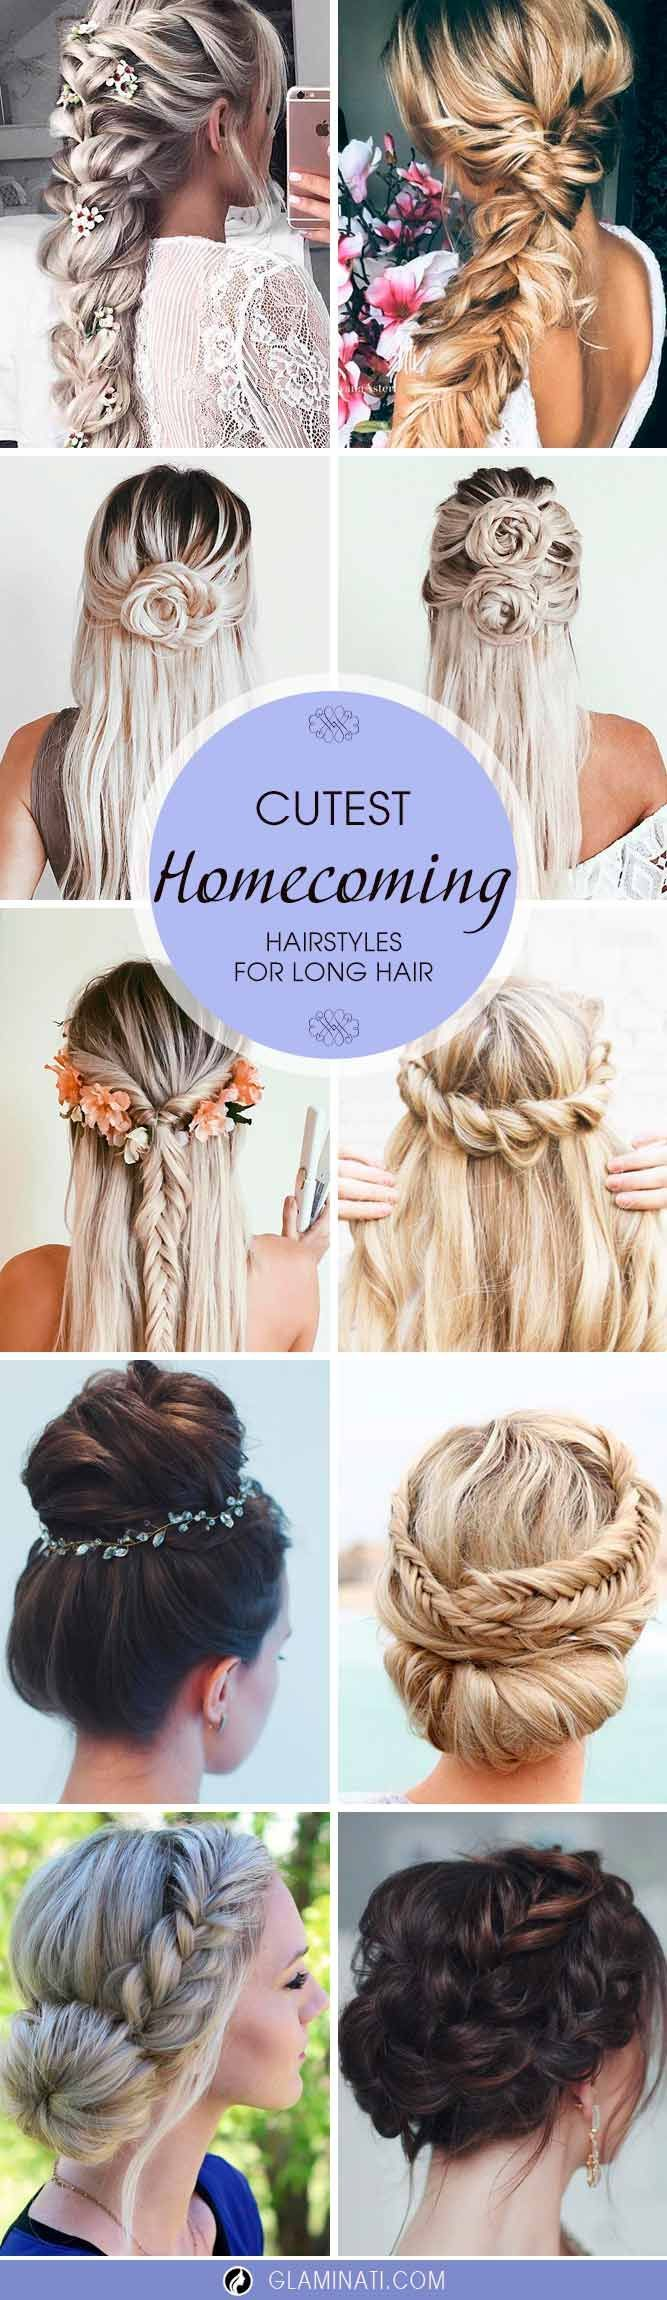 Cutest and most beautiful homecoming hairstyles see more